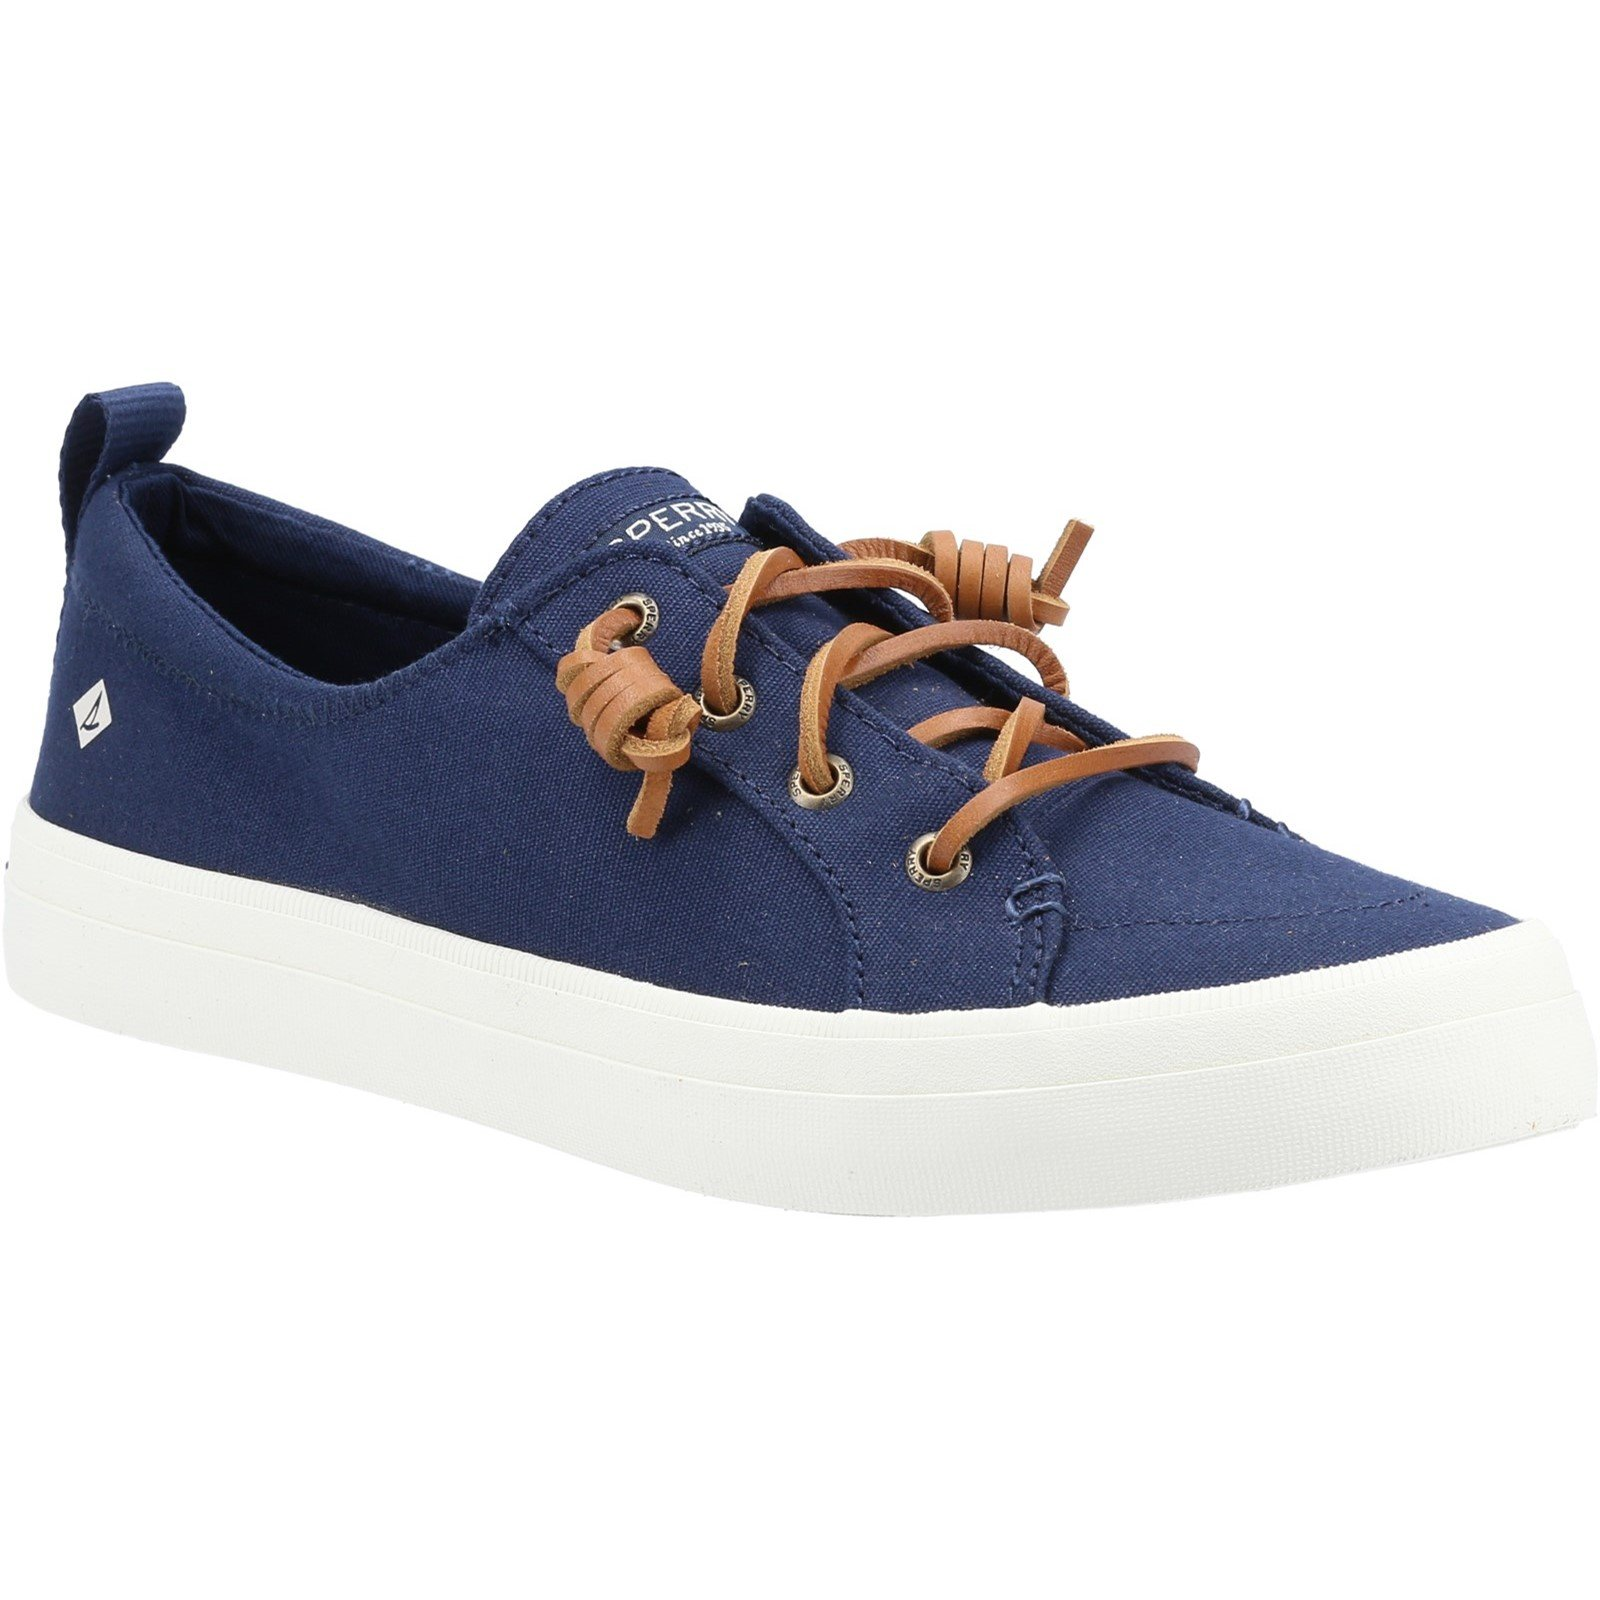 Sperry Women's Crest Vibe Canvas Lace Trainers Various Colours 32937 - Navy 6